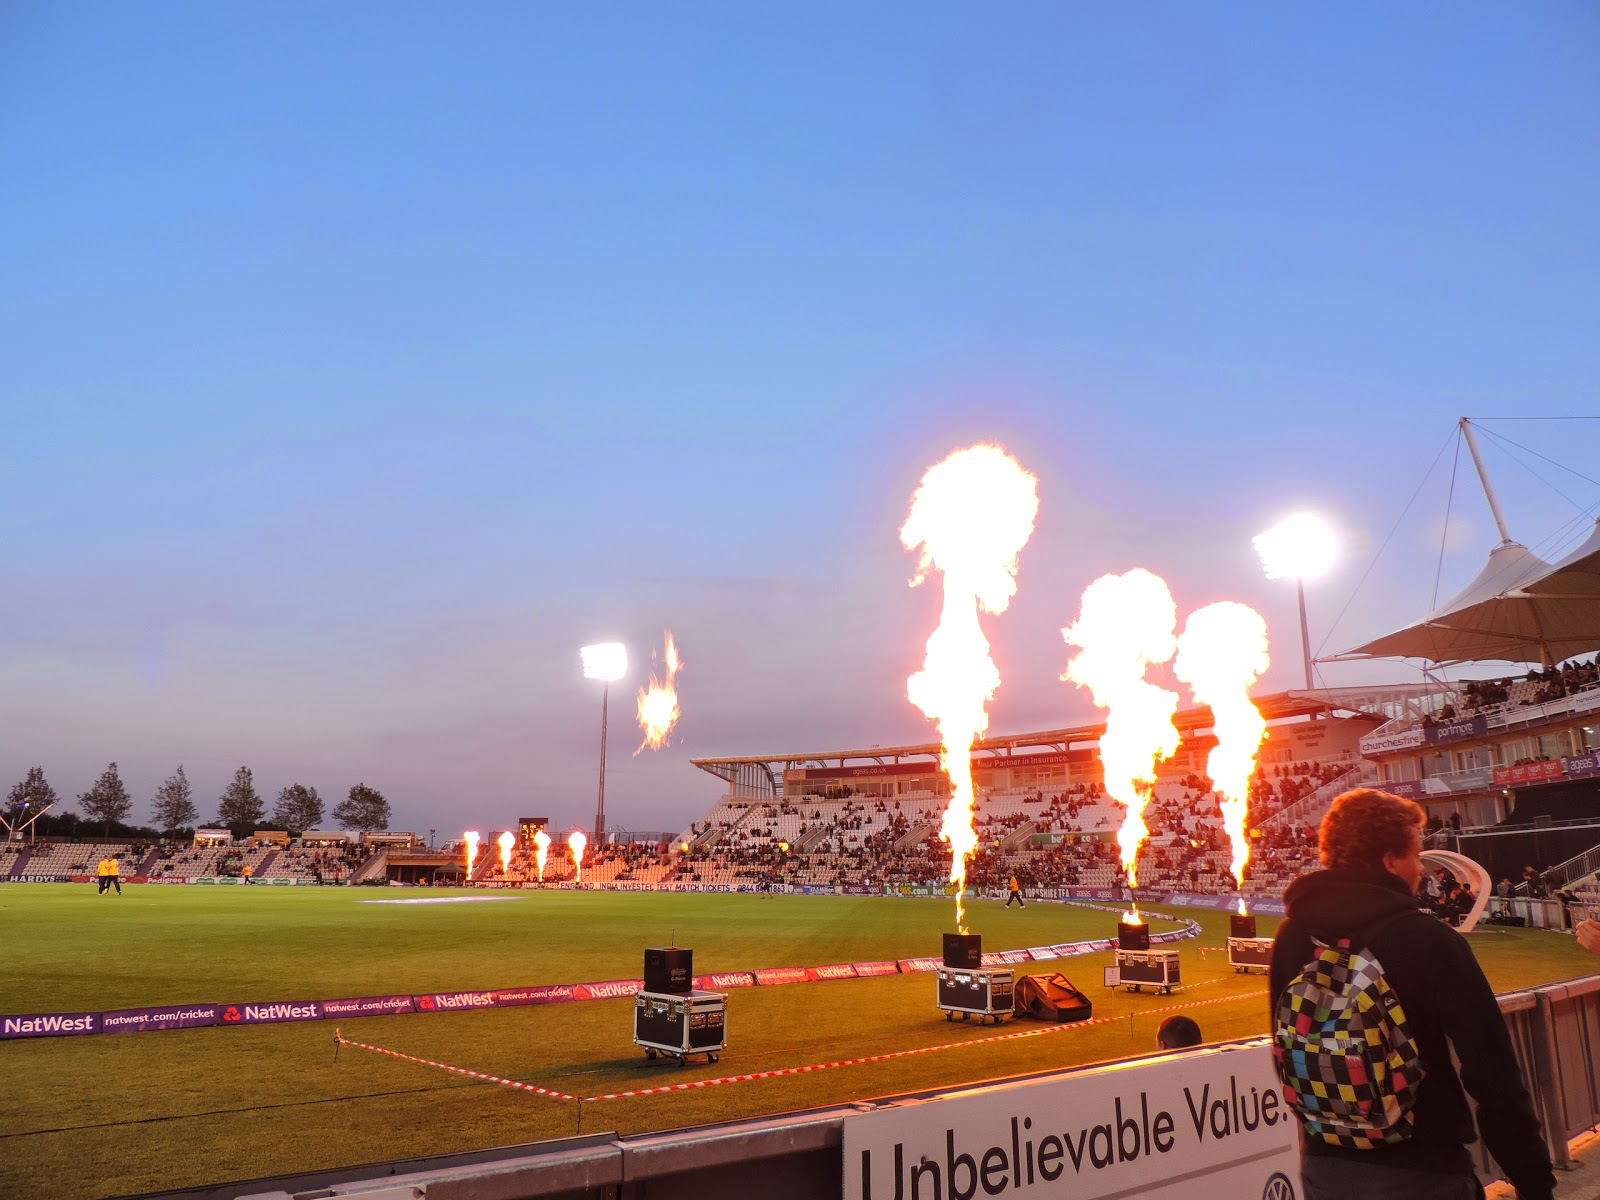 natwest blast t20 cricket match crowd festivities cheerleaders and flame throwers